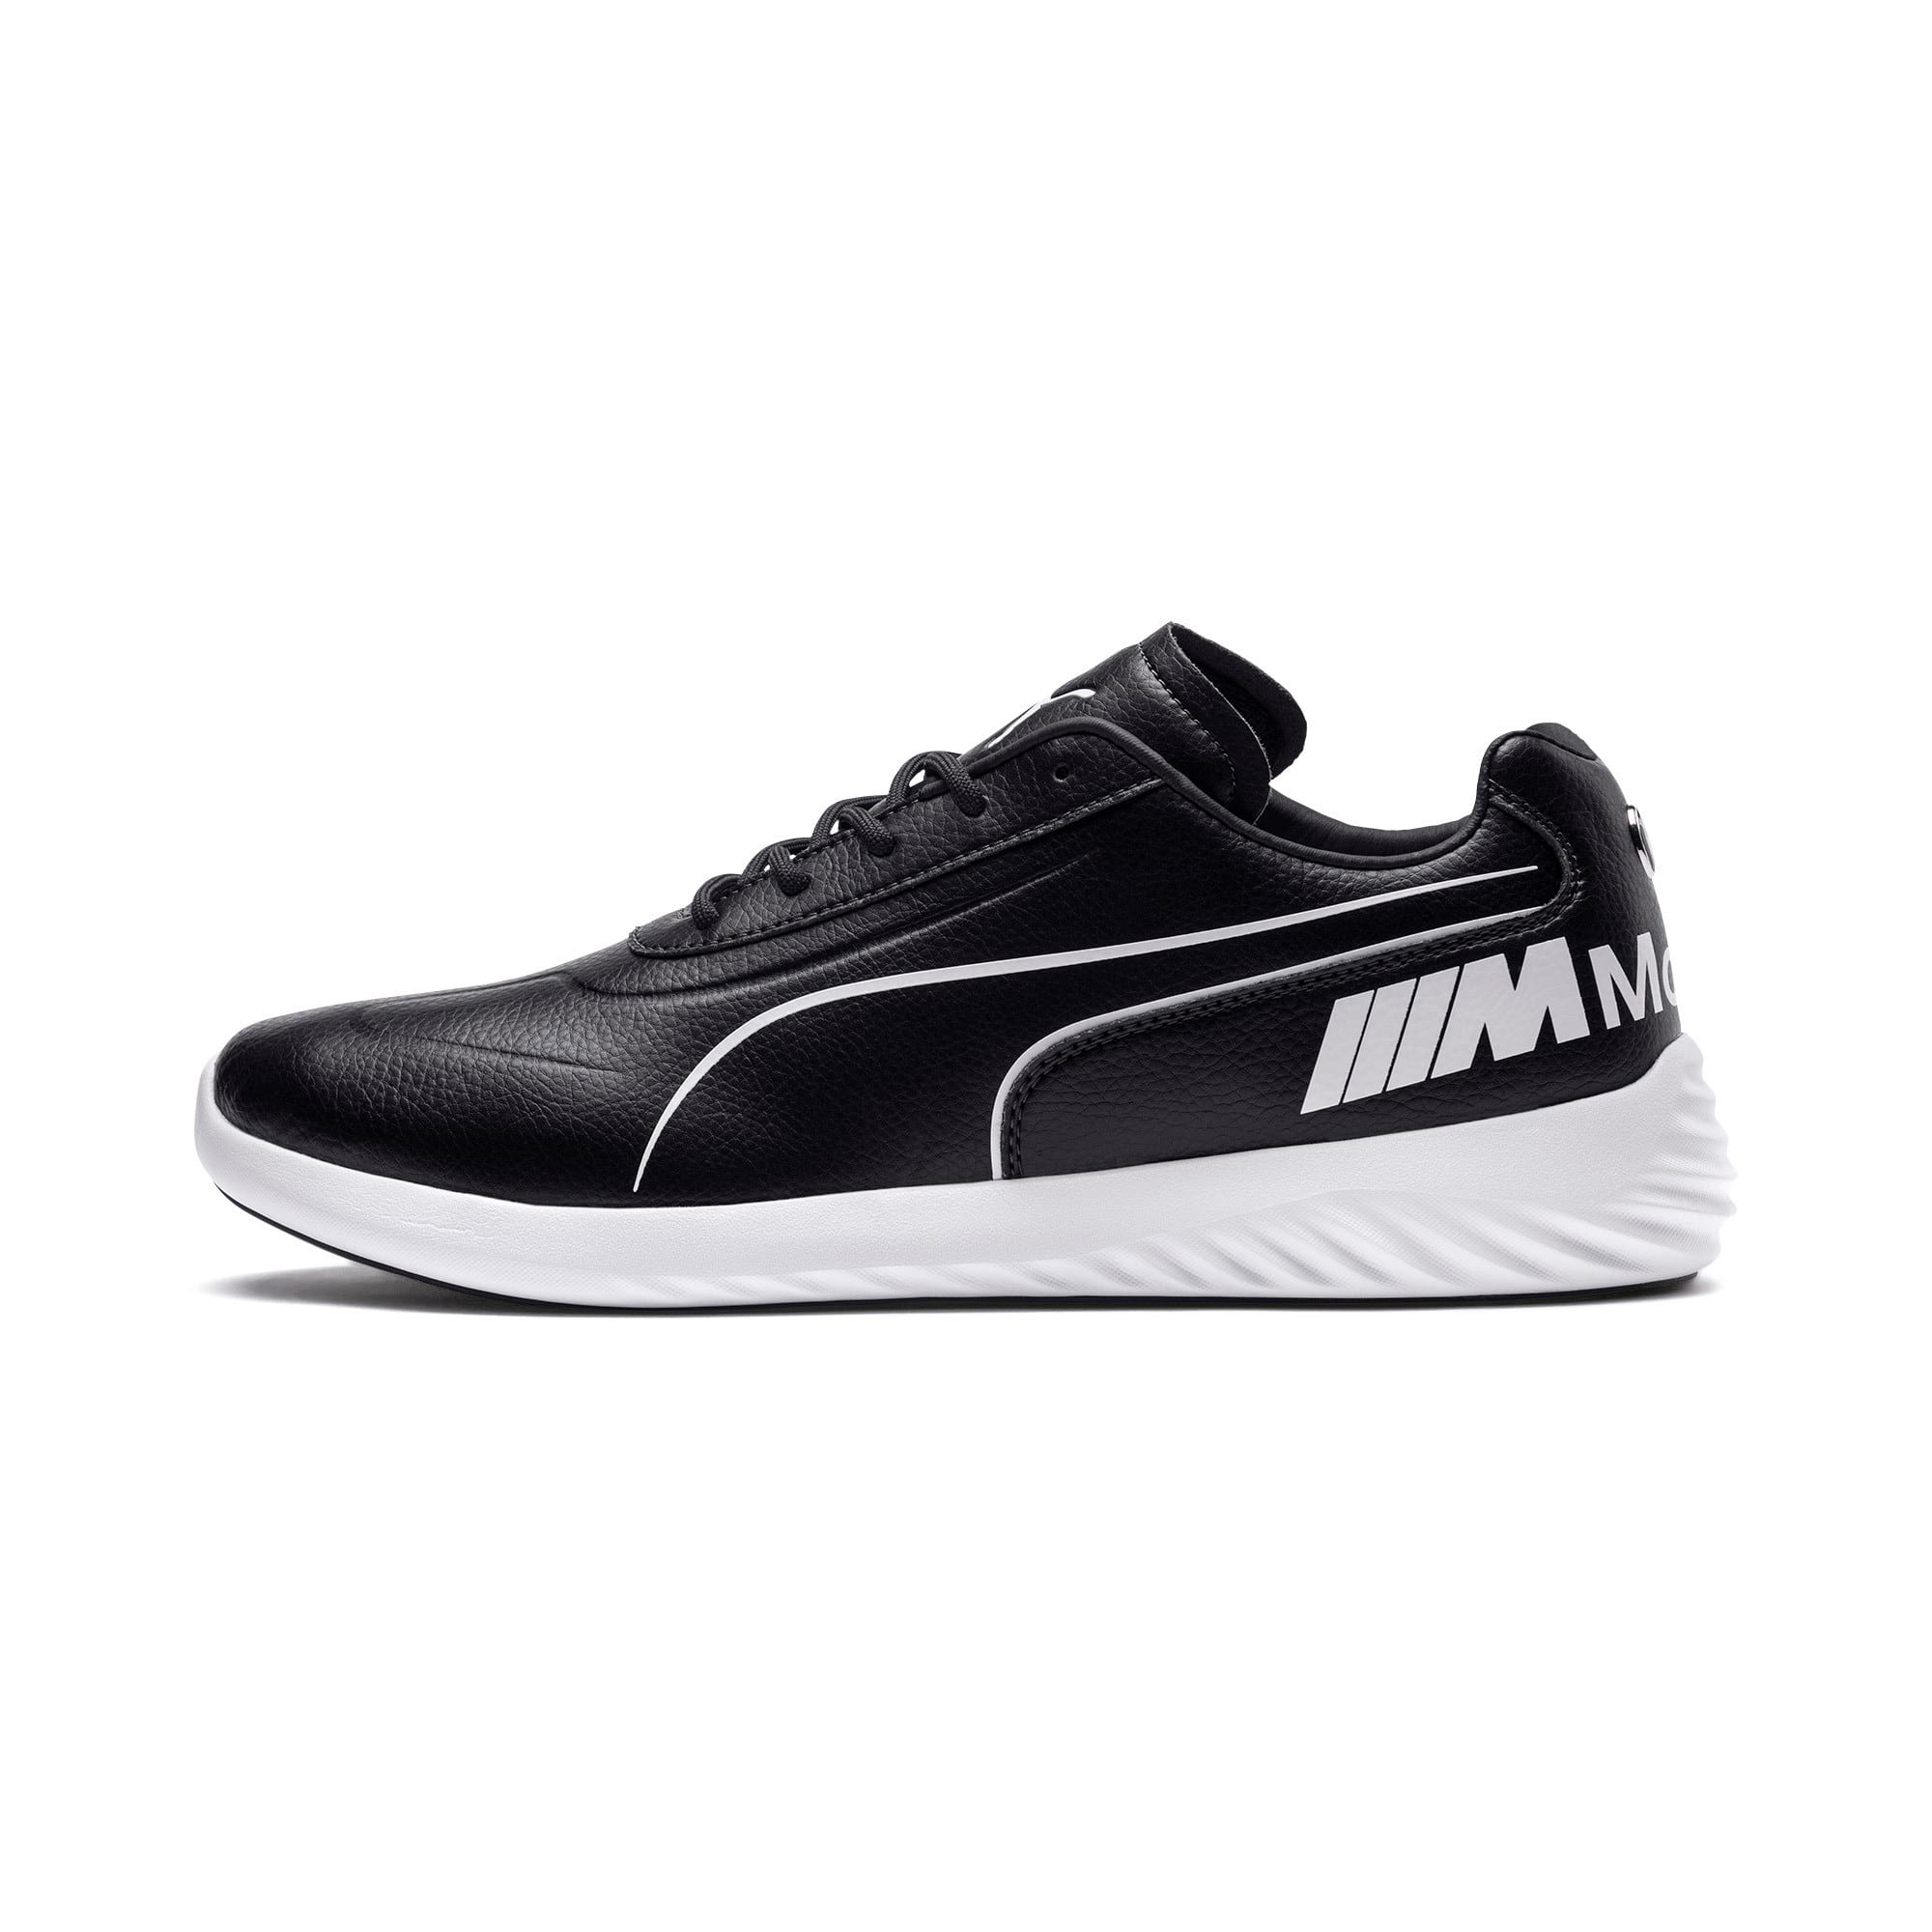 Thumbnail 1 of BMW M Motorsport SpeedCat Evo Synth Sneakers, Anthracite-Puma White, medium